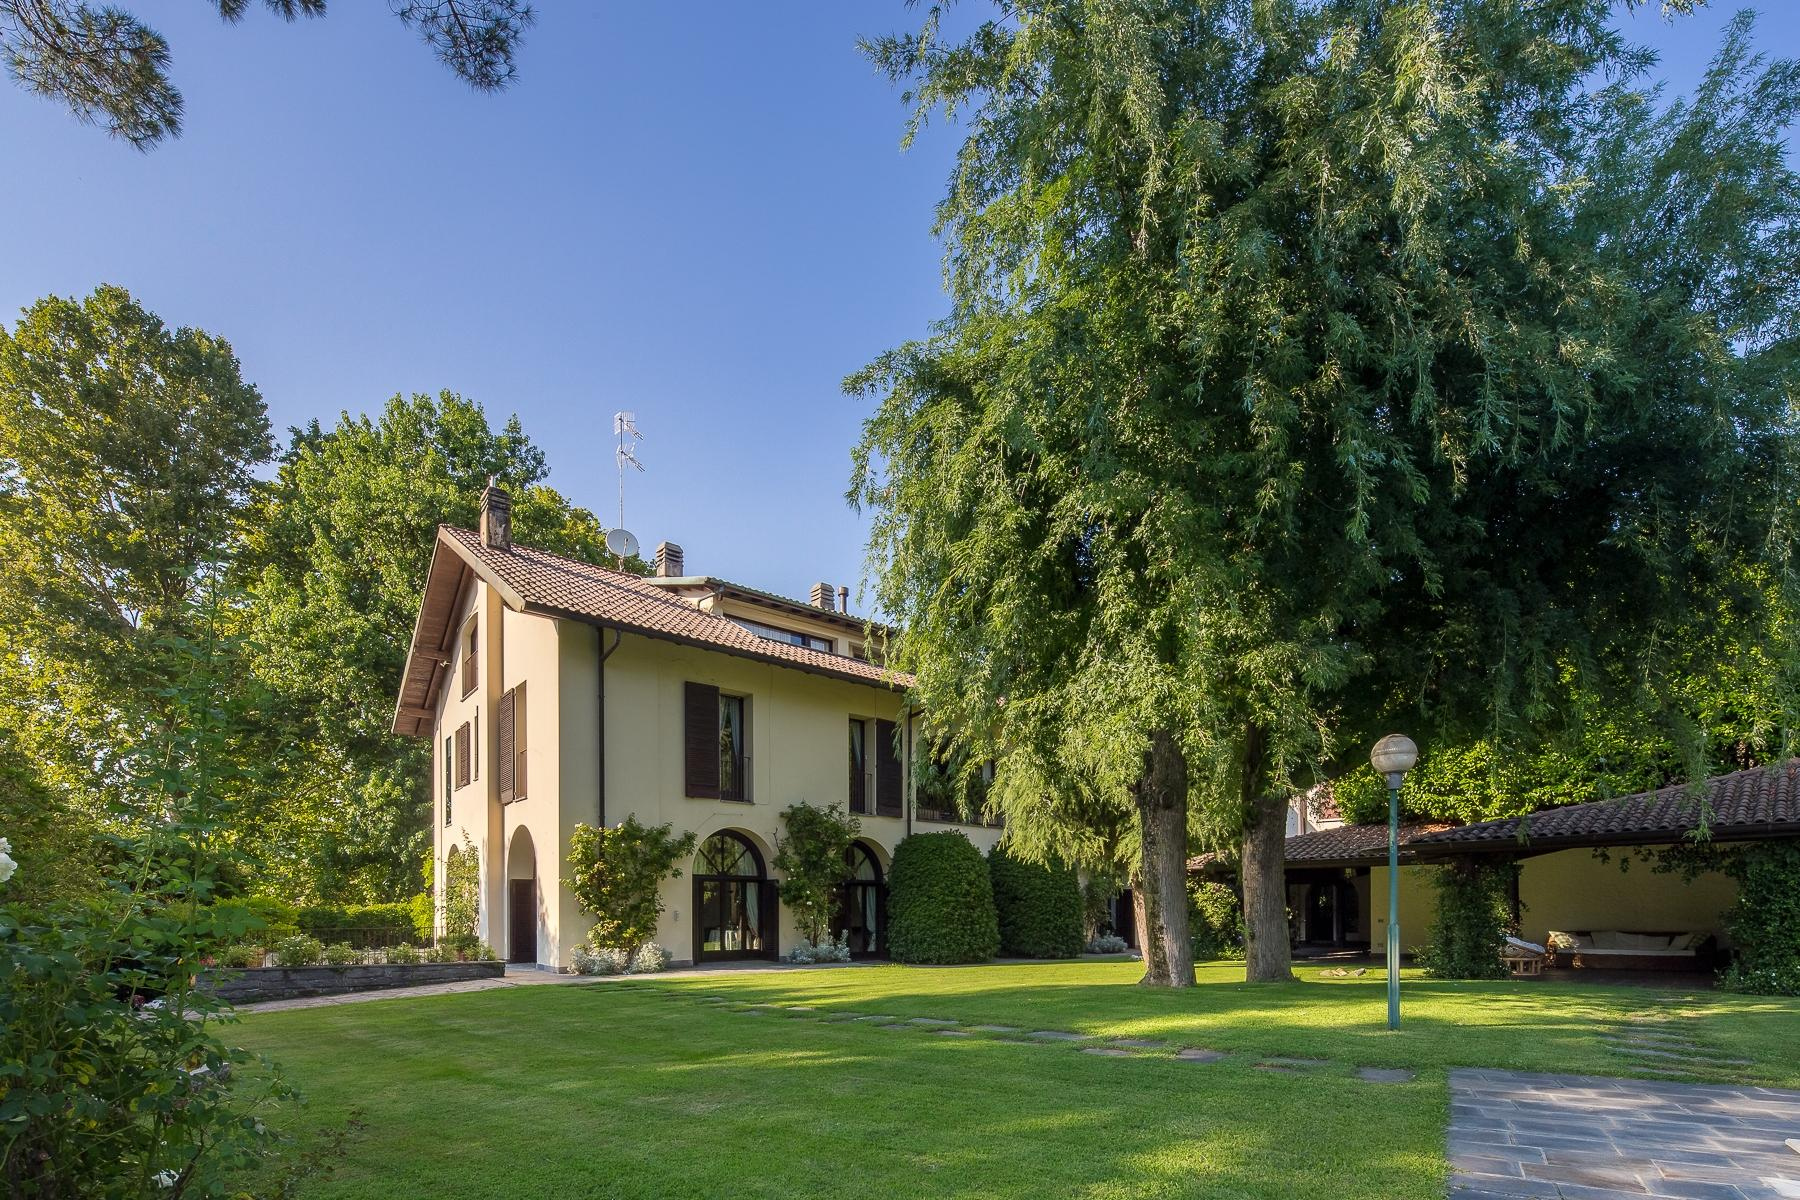 Villa with swimming pool on the Ticino river - 3